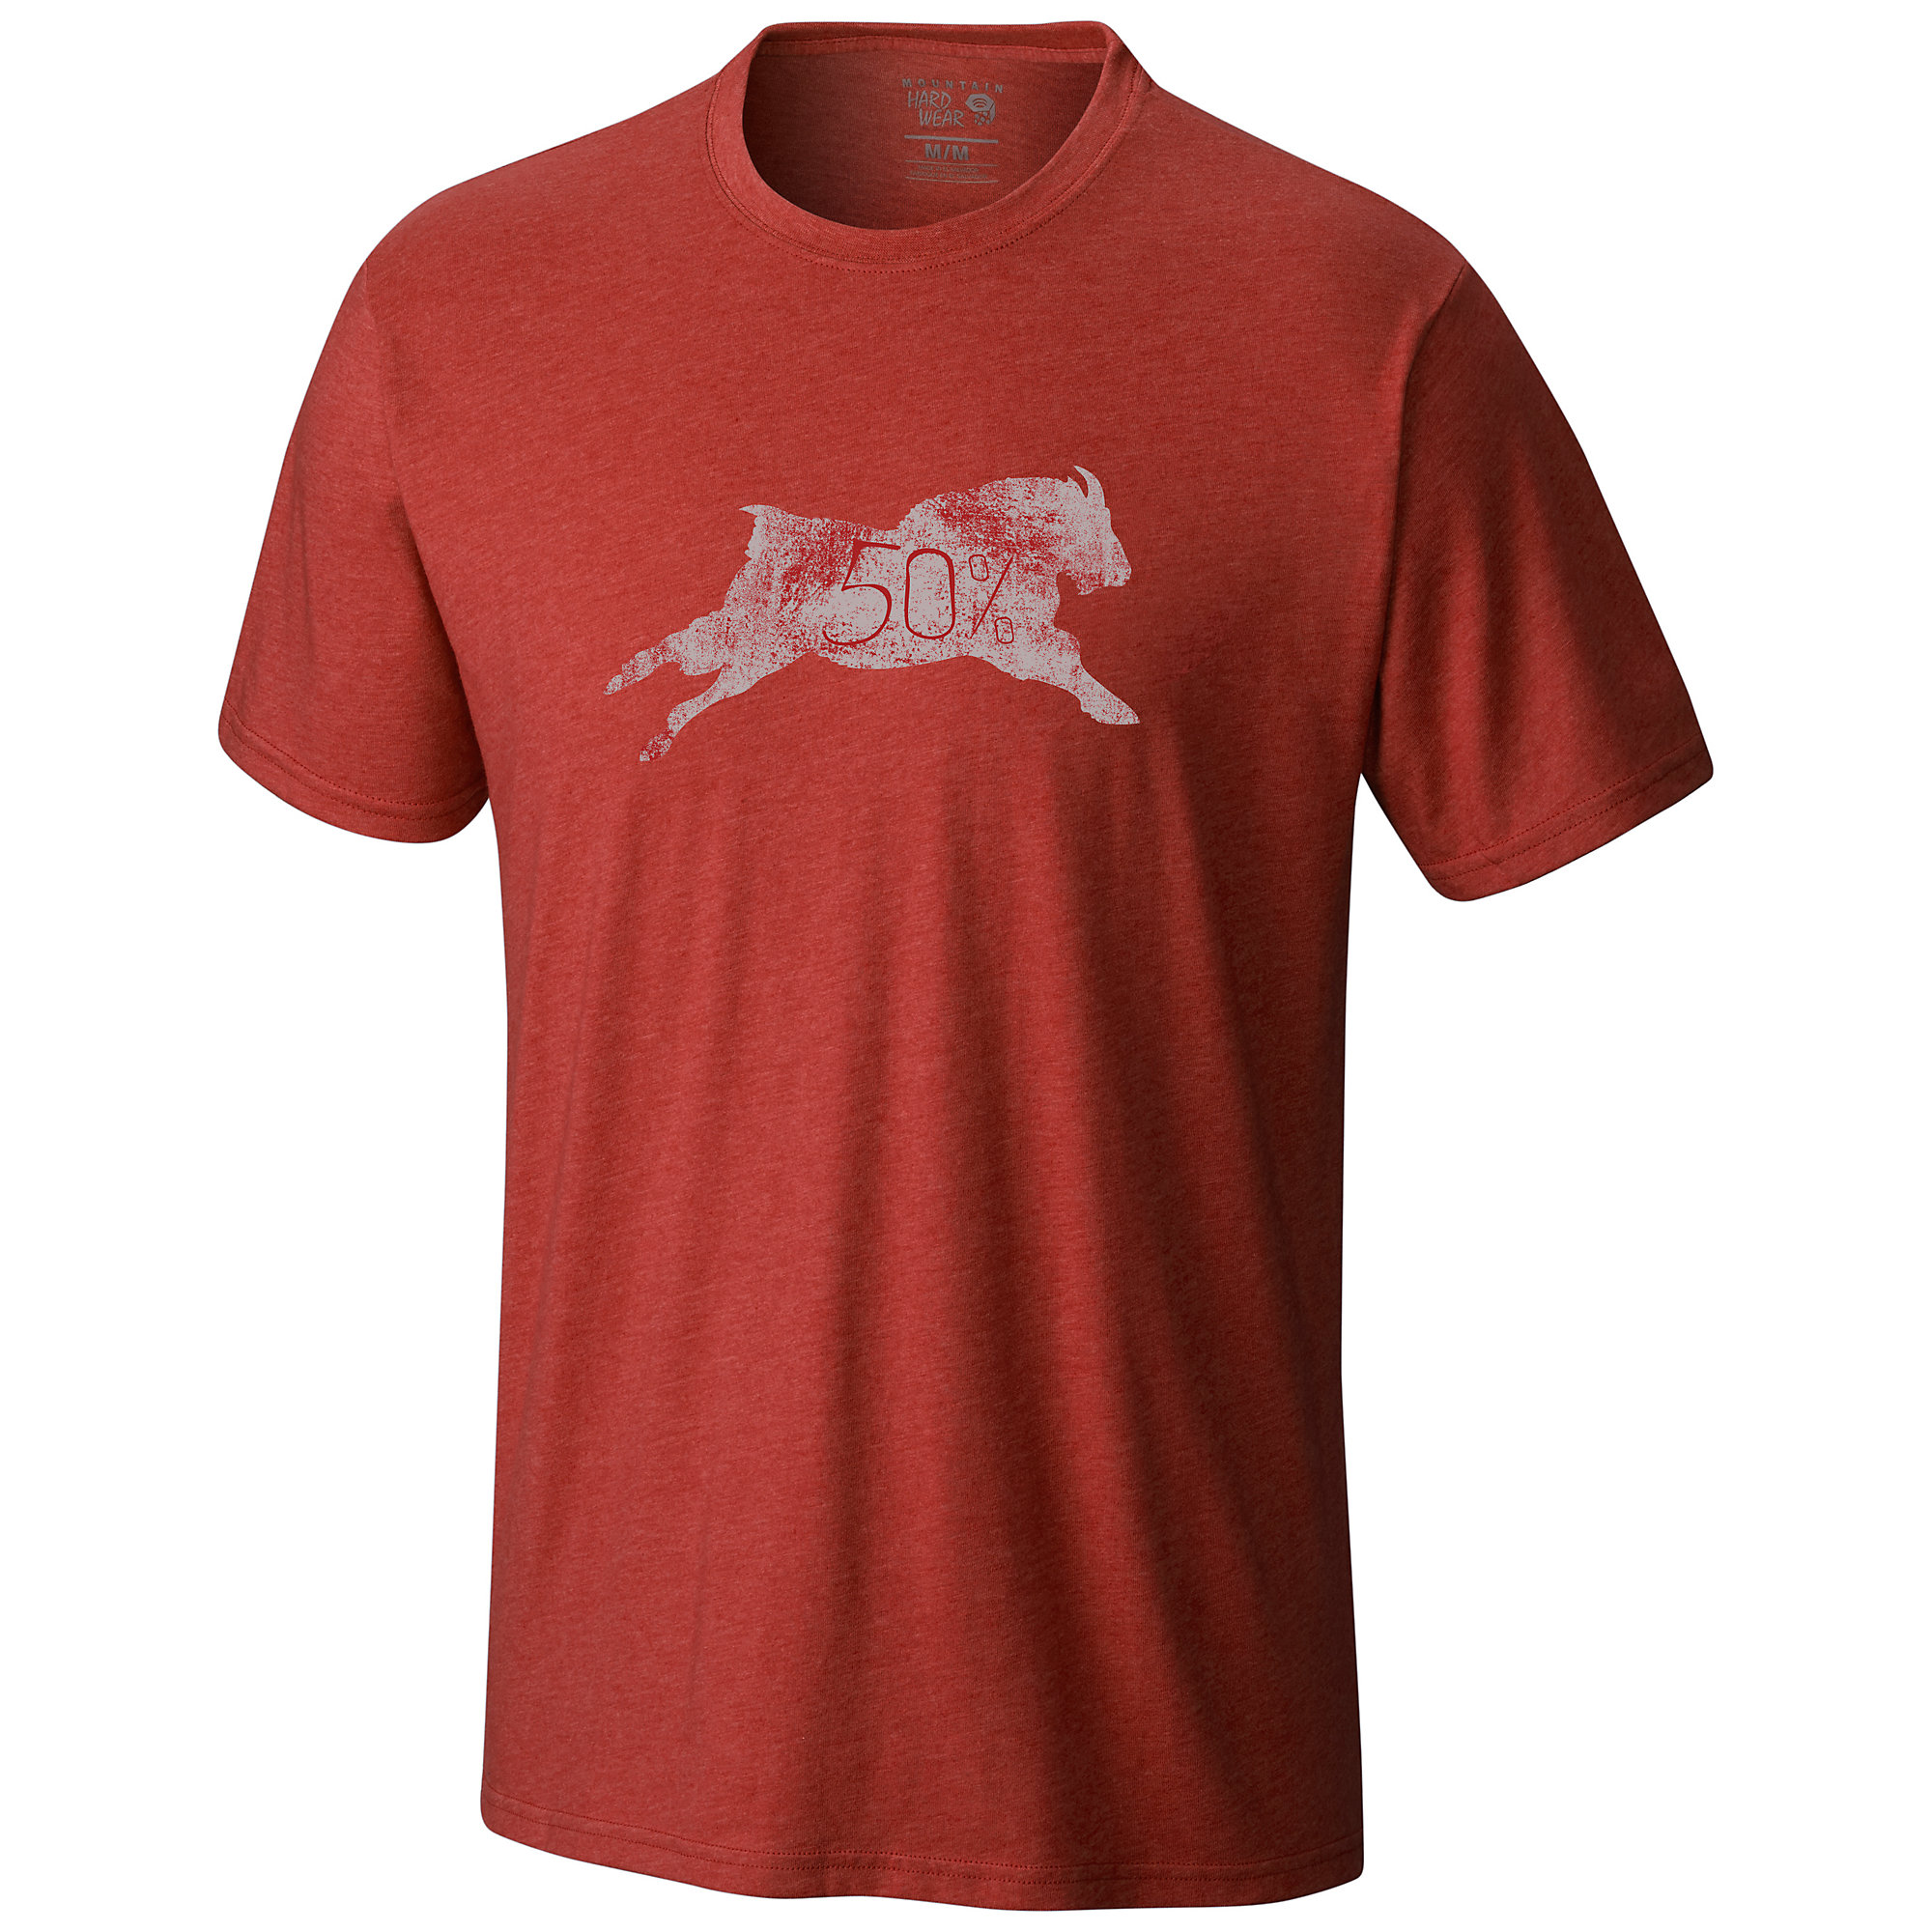 Mountain Hardwear 50 Percent Goat Short Sleeve T